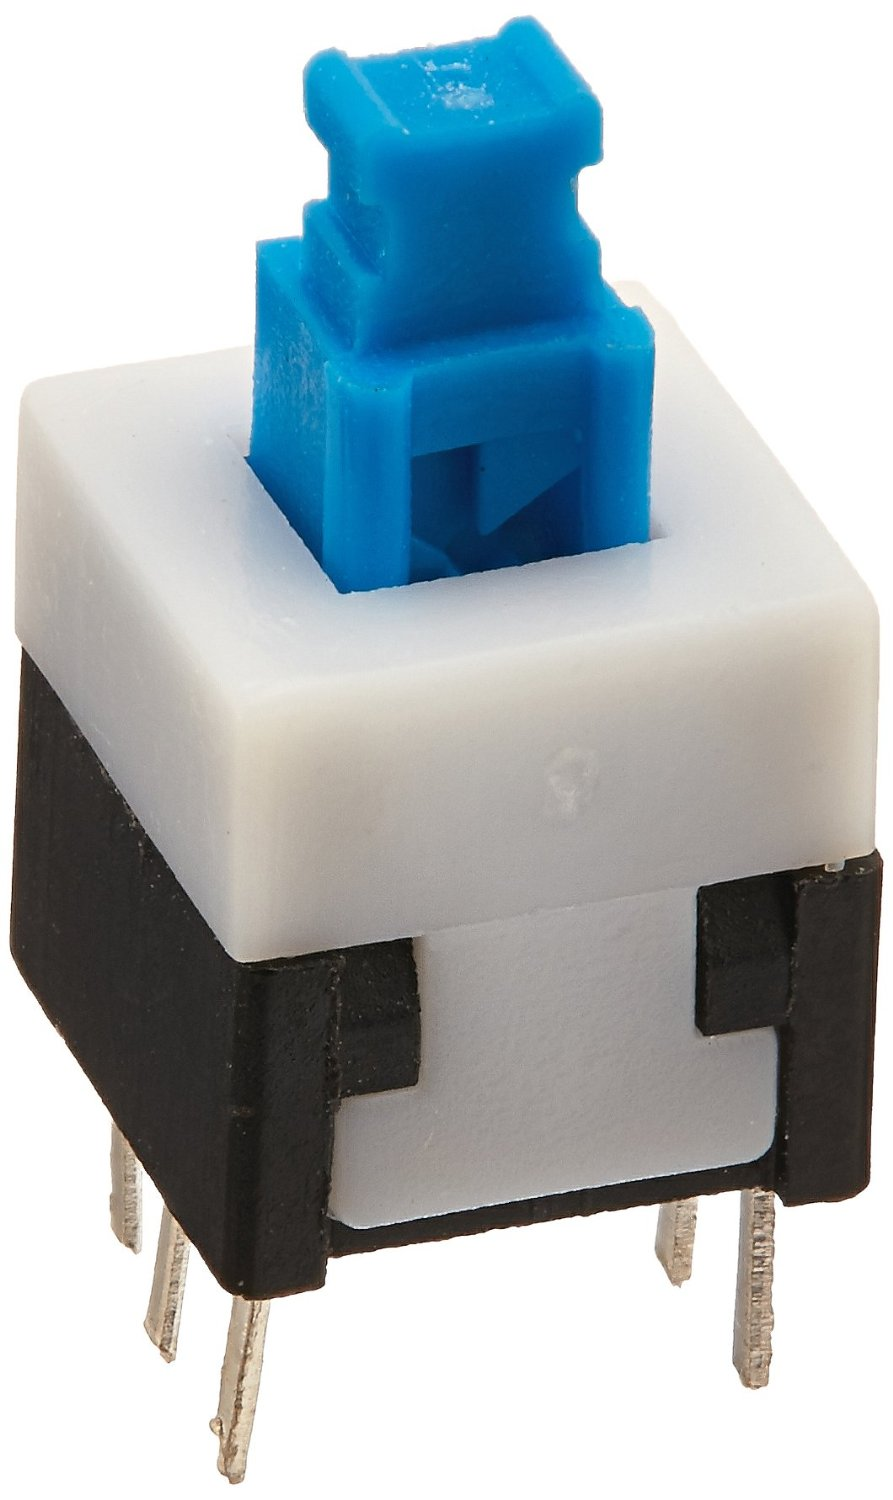 Cheap Dpdt Push Button Find Deals On Line At Details About Switch 3a 250v Off 1 Circuit Latching Get Quotations 30 Pcs 6pins Square 8mmx8mm Type Mini